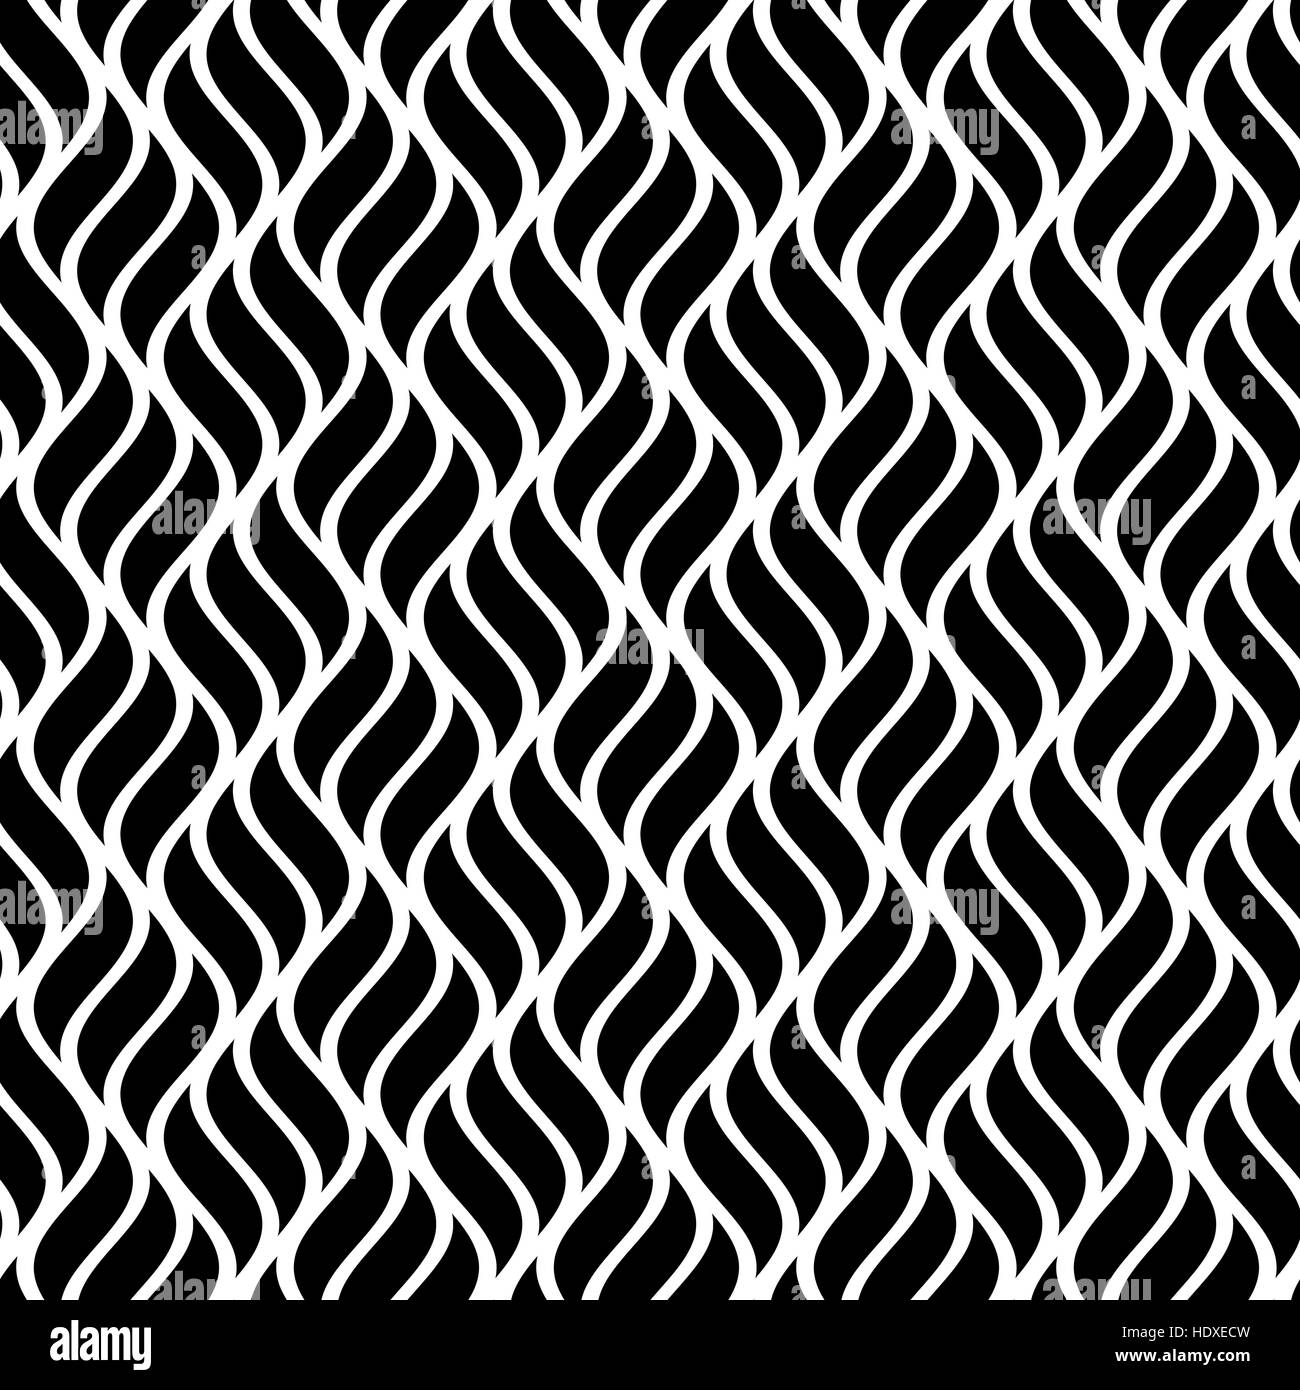 Seamless Abstract Pattern Photo Stock